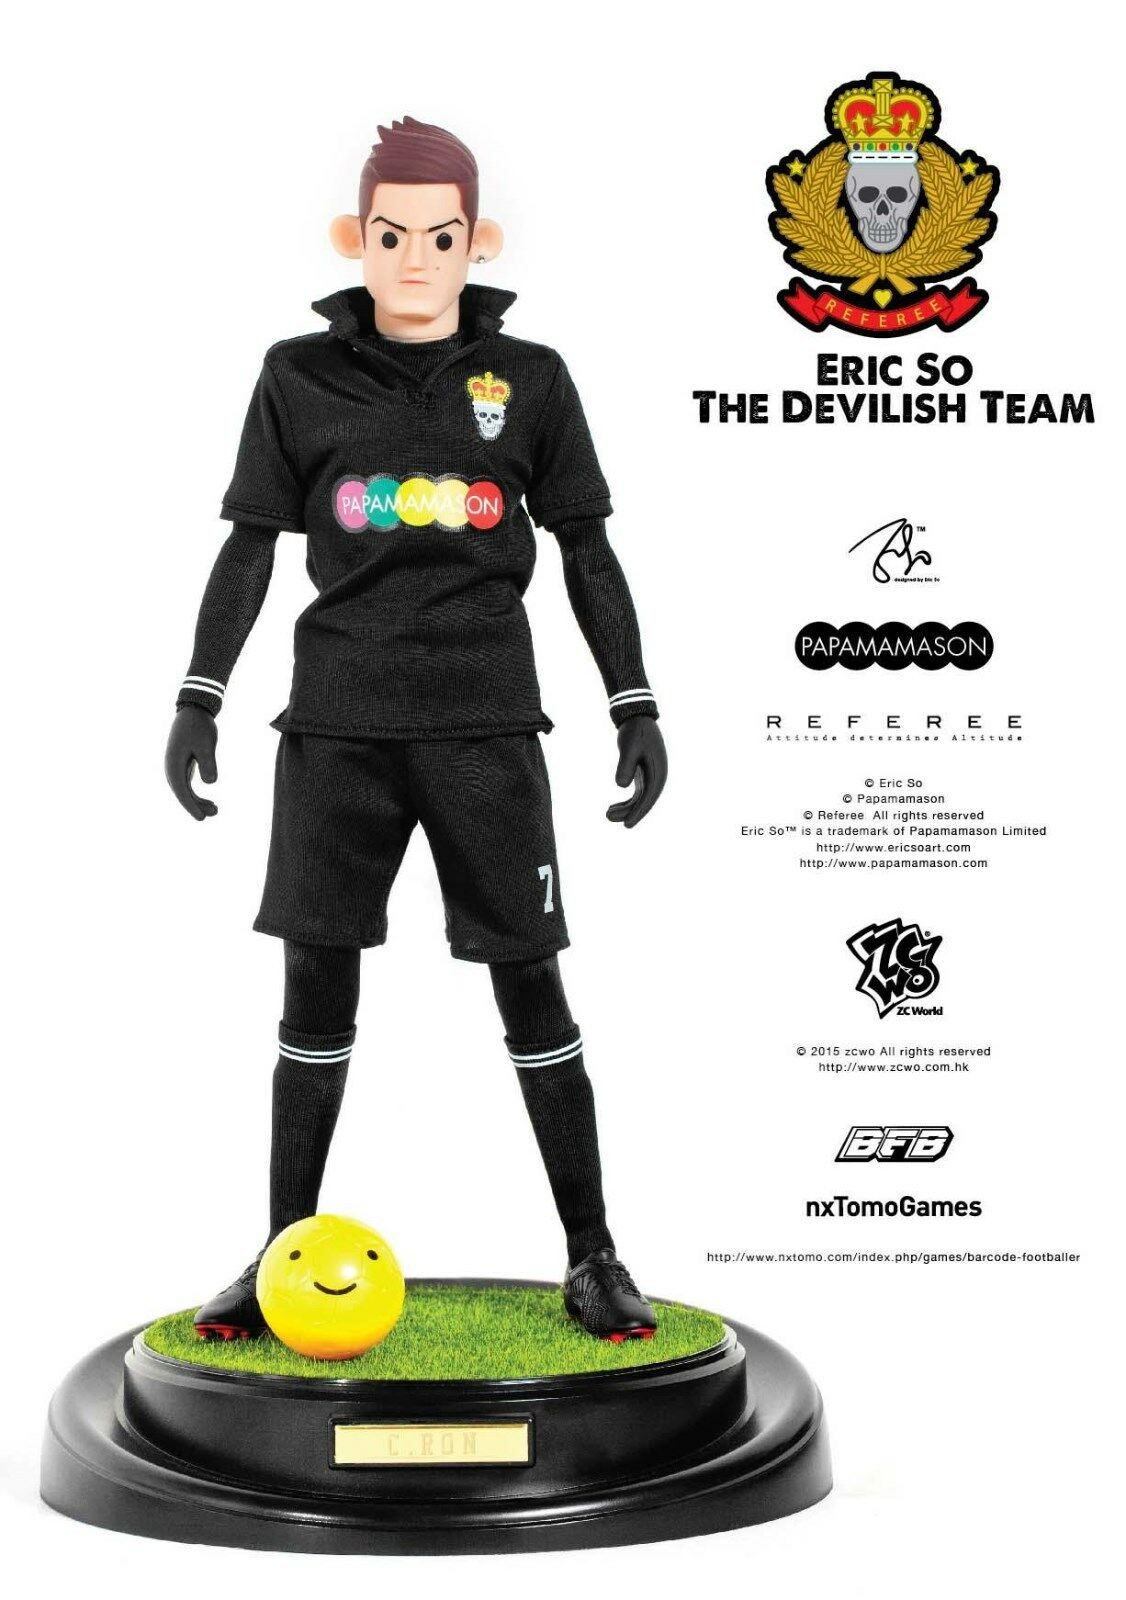 ZCWO 1 6 Eric So Papamamason The Devilish Team X X X BFB  - C.RON Designer Toy 42e381